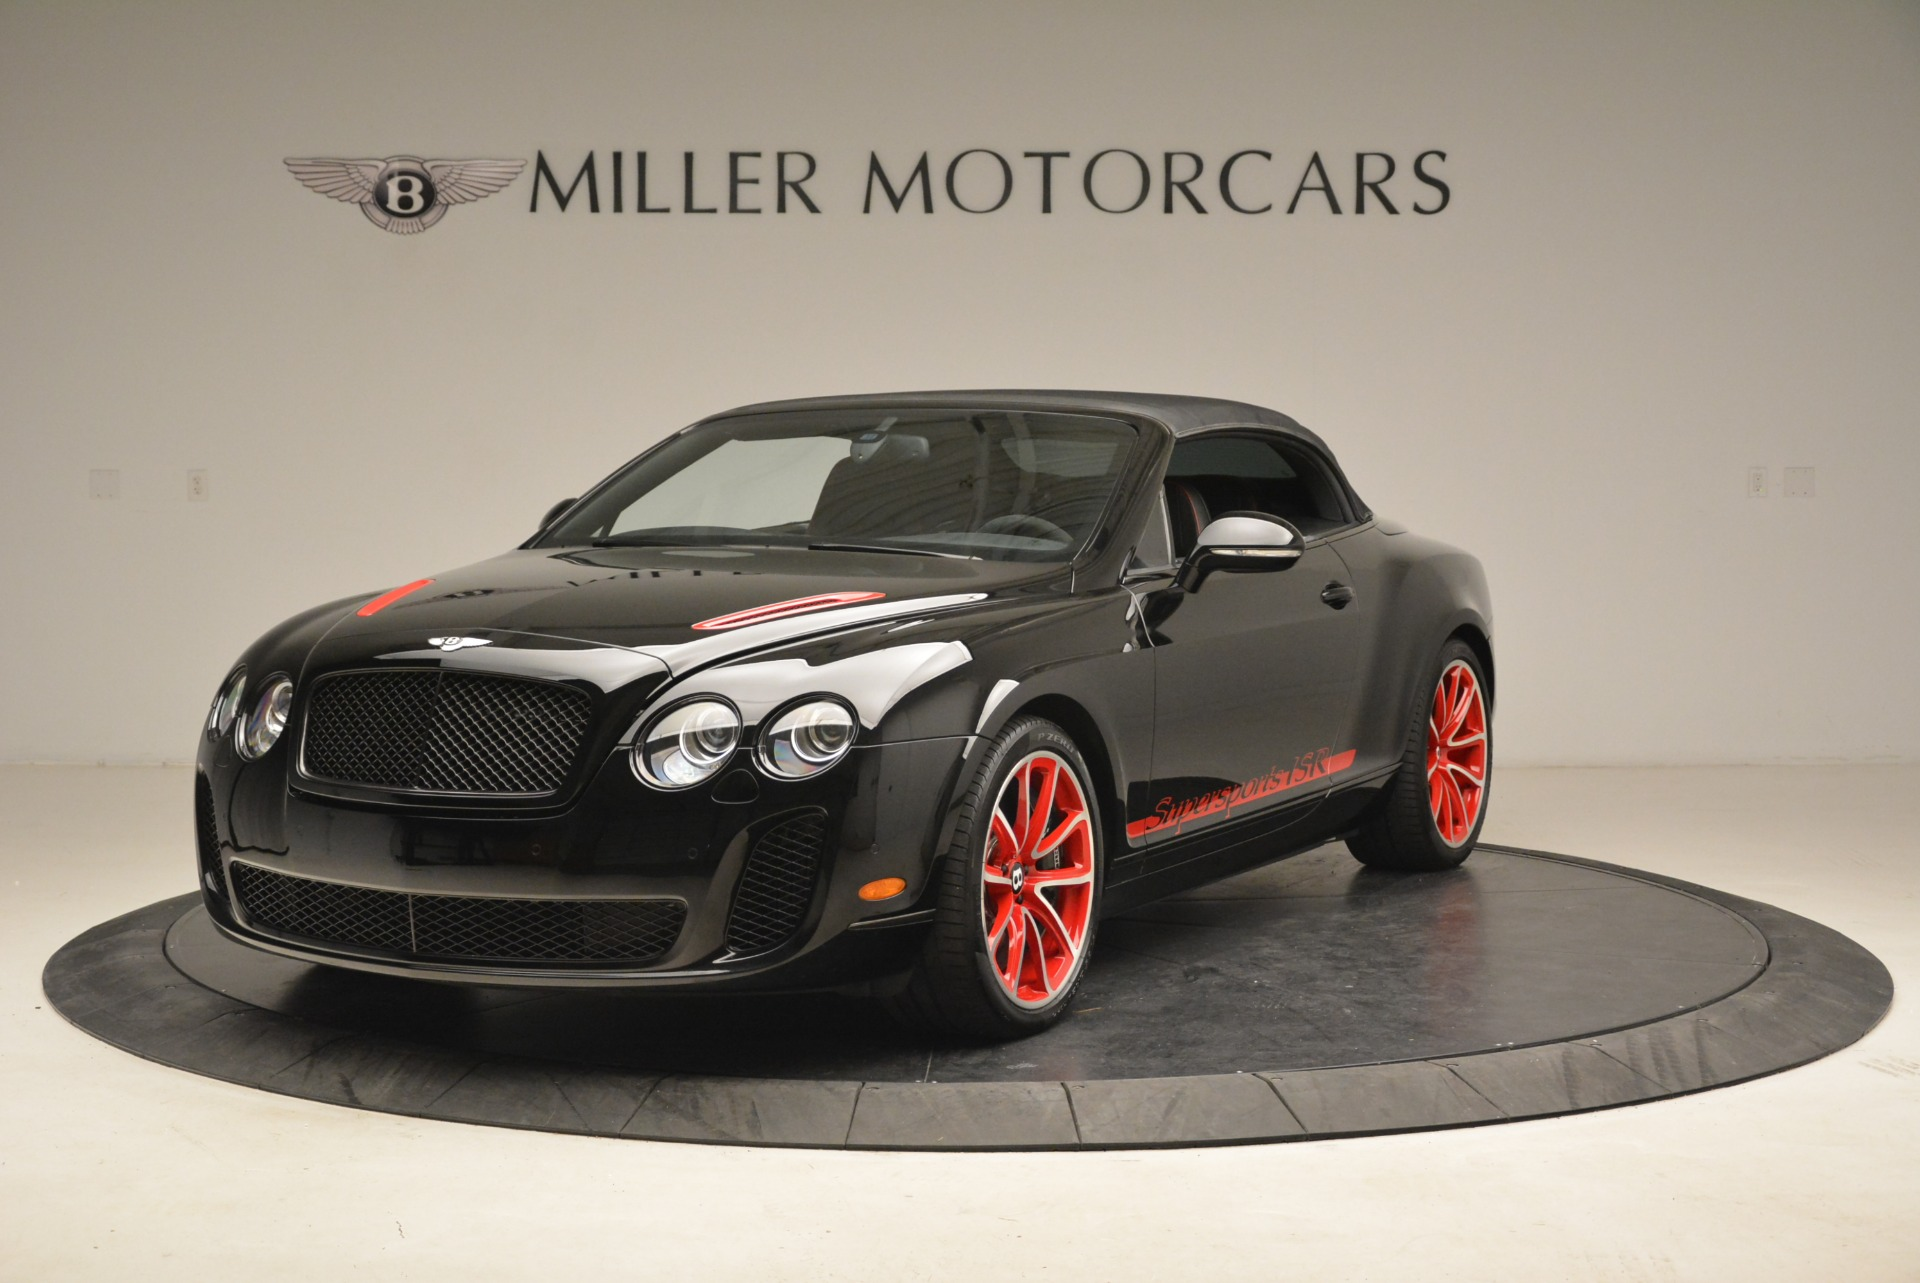 Used 2013 Bentley Continental GT Supersports Convertible ISR For Sale In Westport, CT 2151_p14